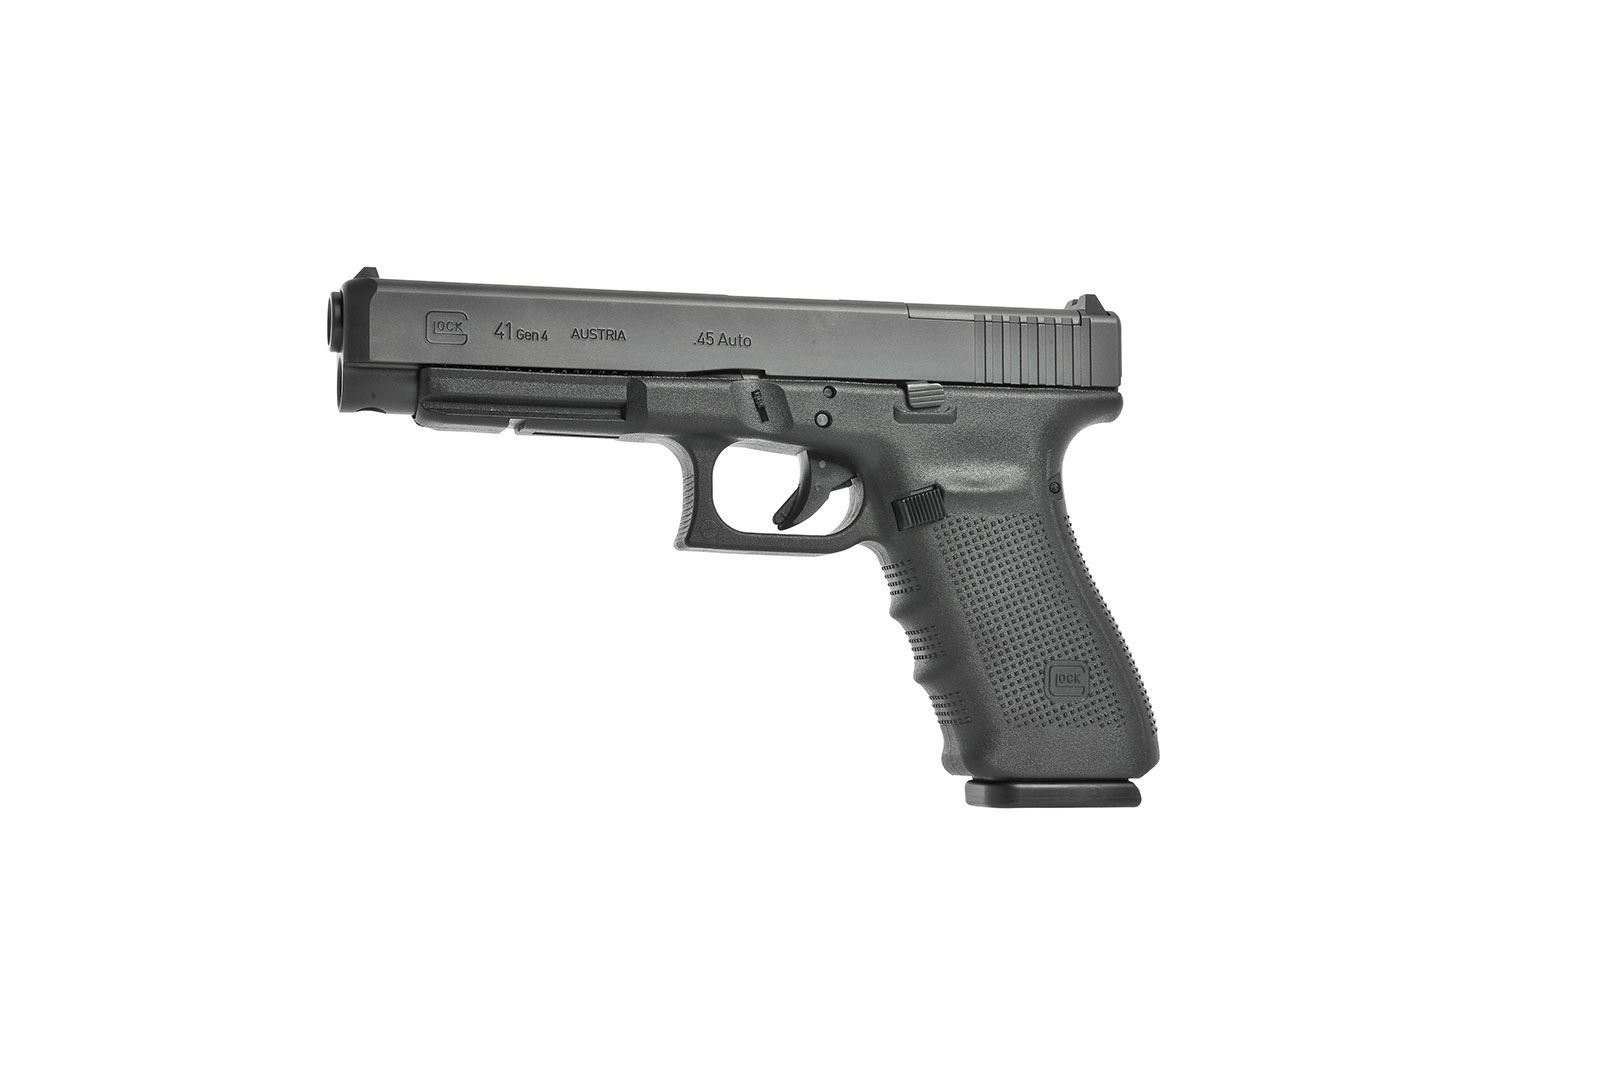 Glock G41 Gen4  45 MOS Tactical / Competition with 3 13rd Magazines